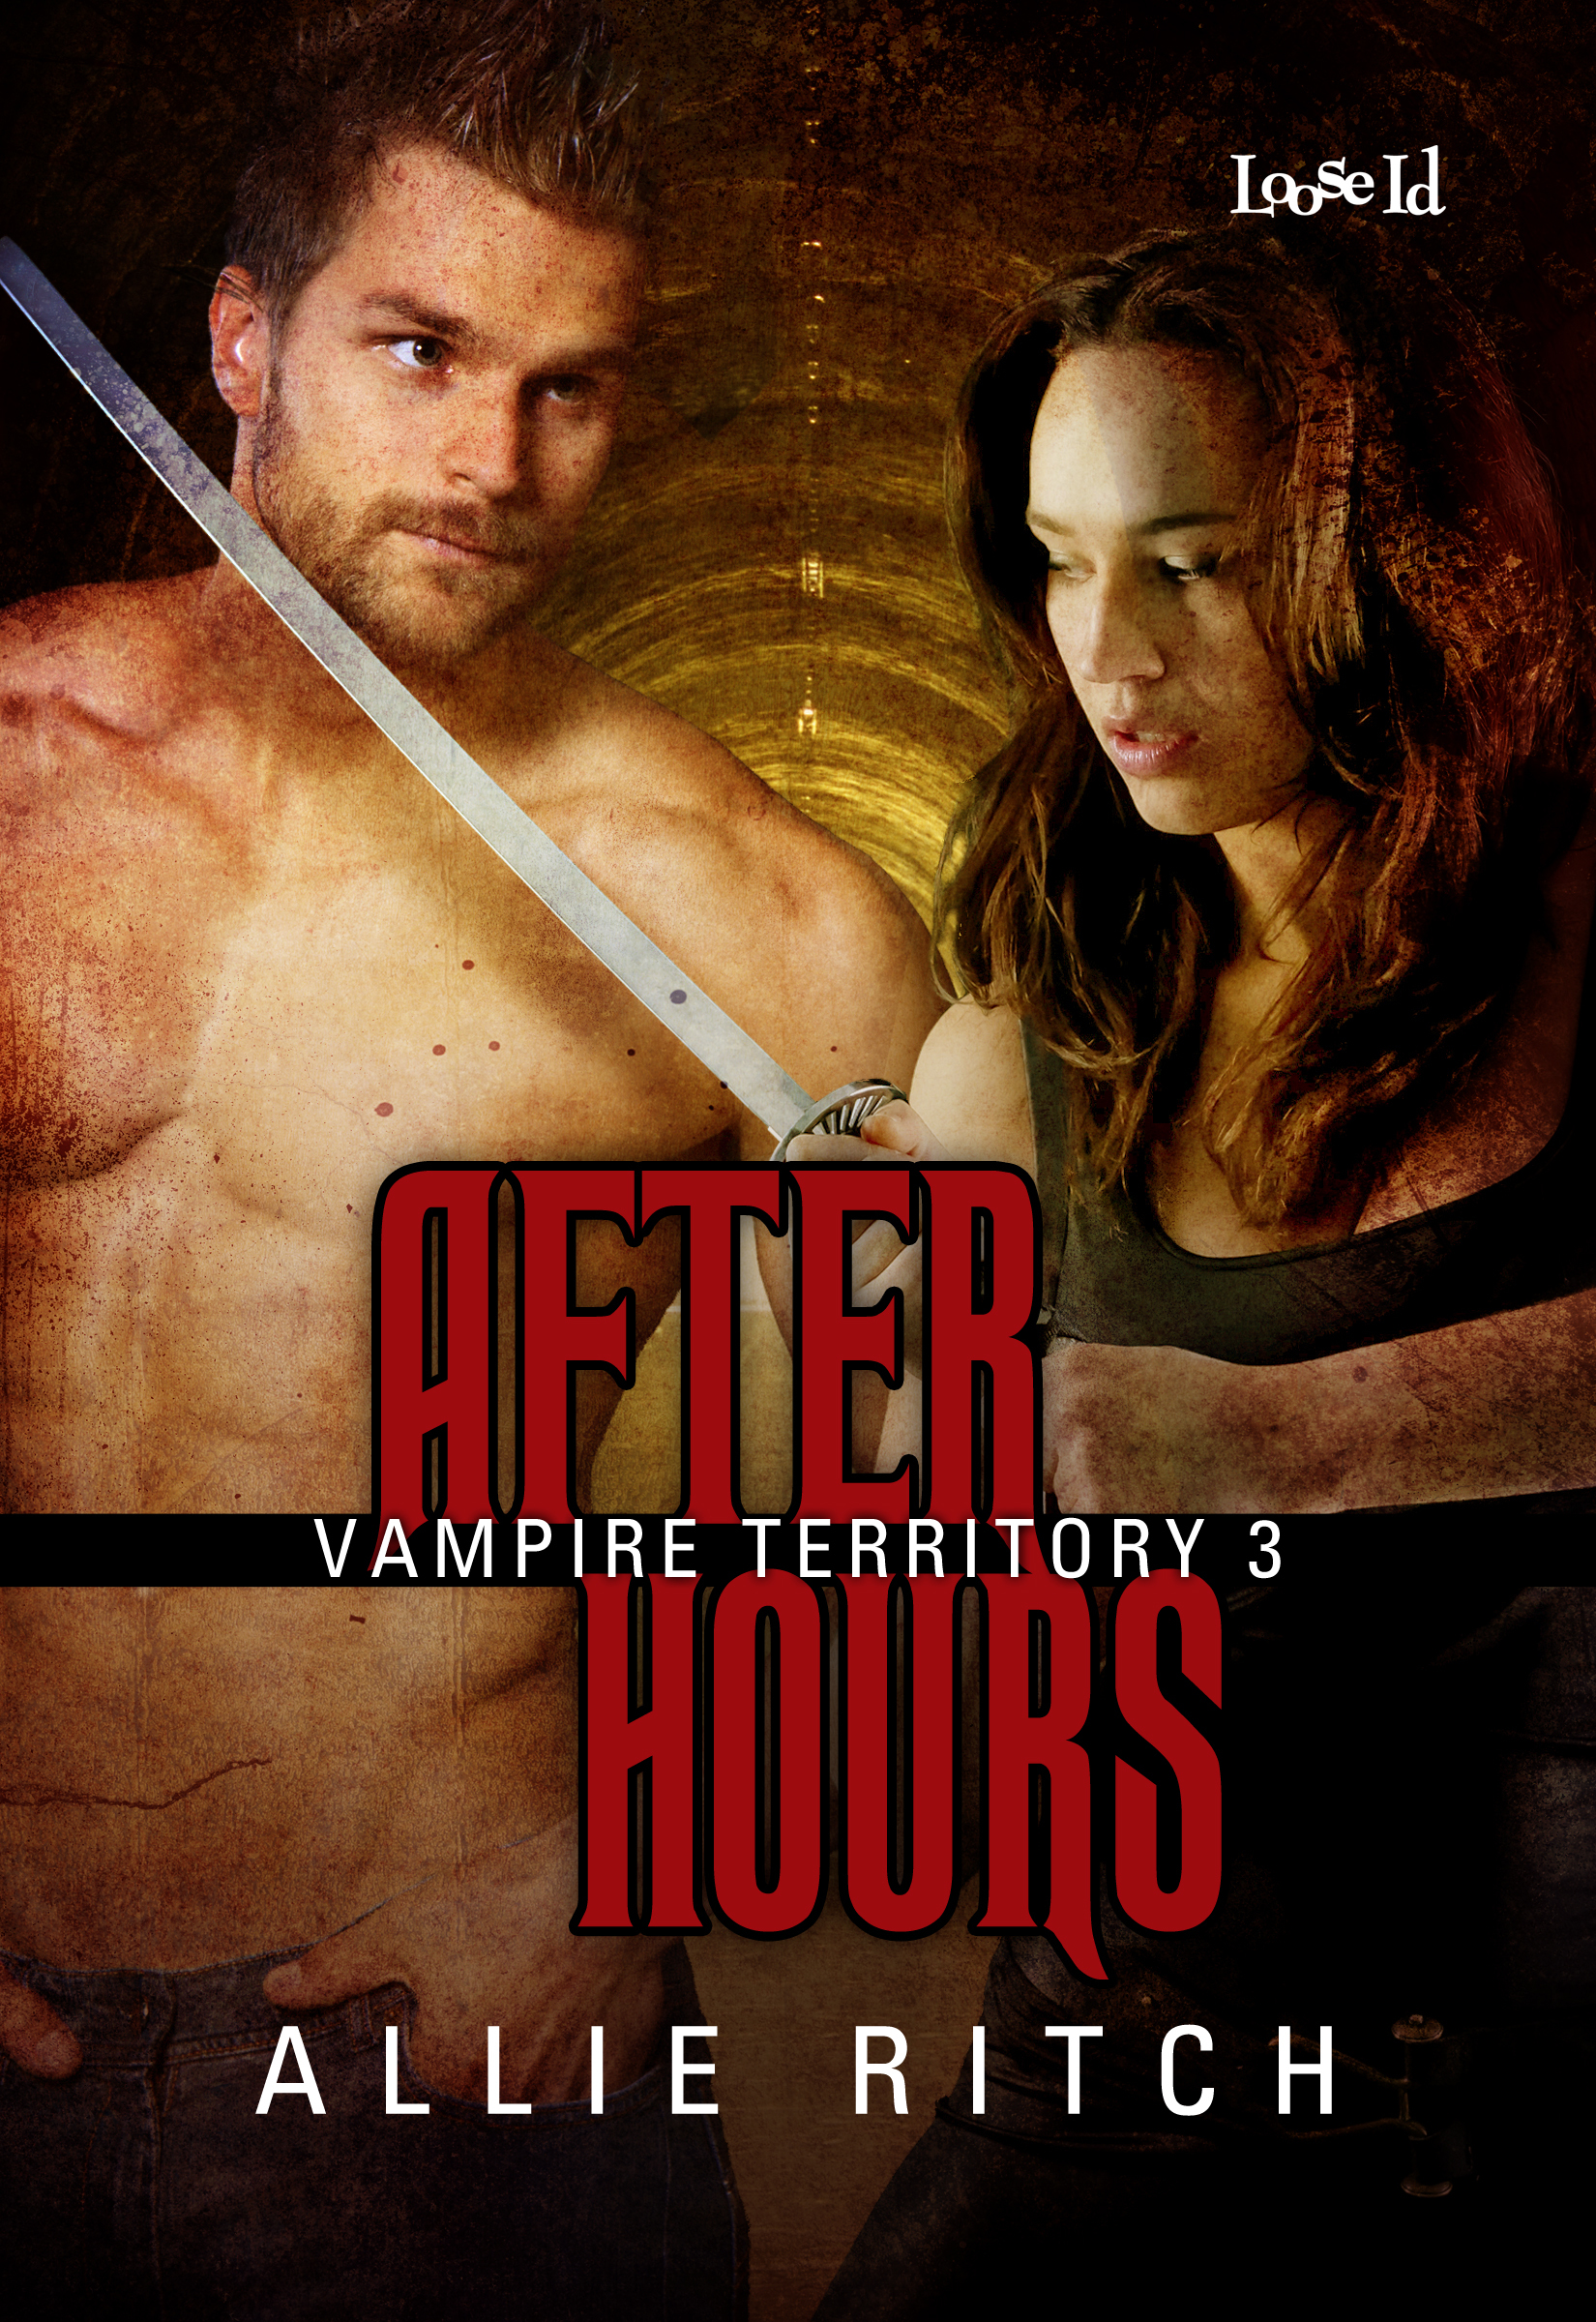 After Hours (Vampire Territory 3) Allie Ritch